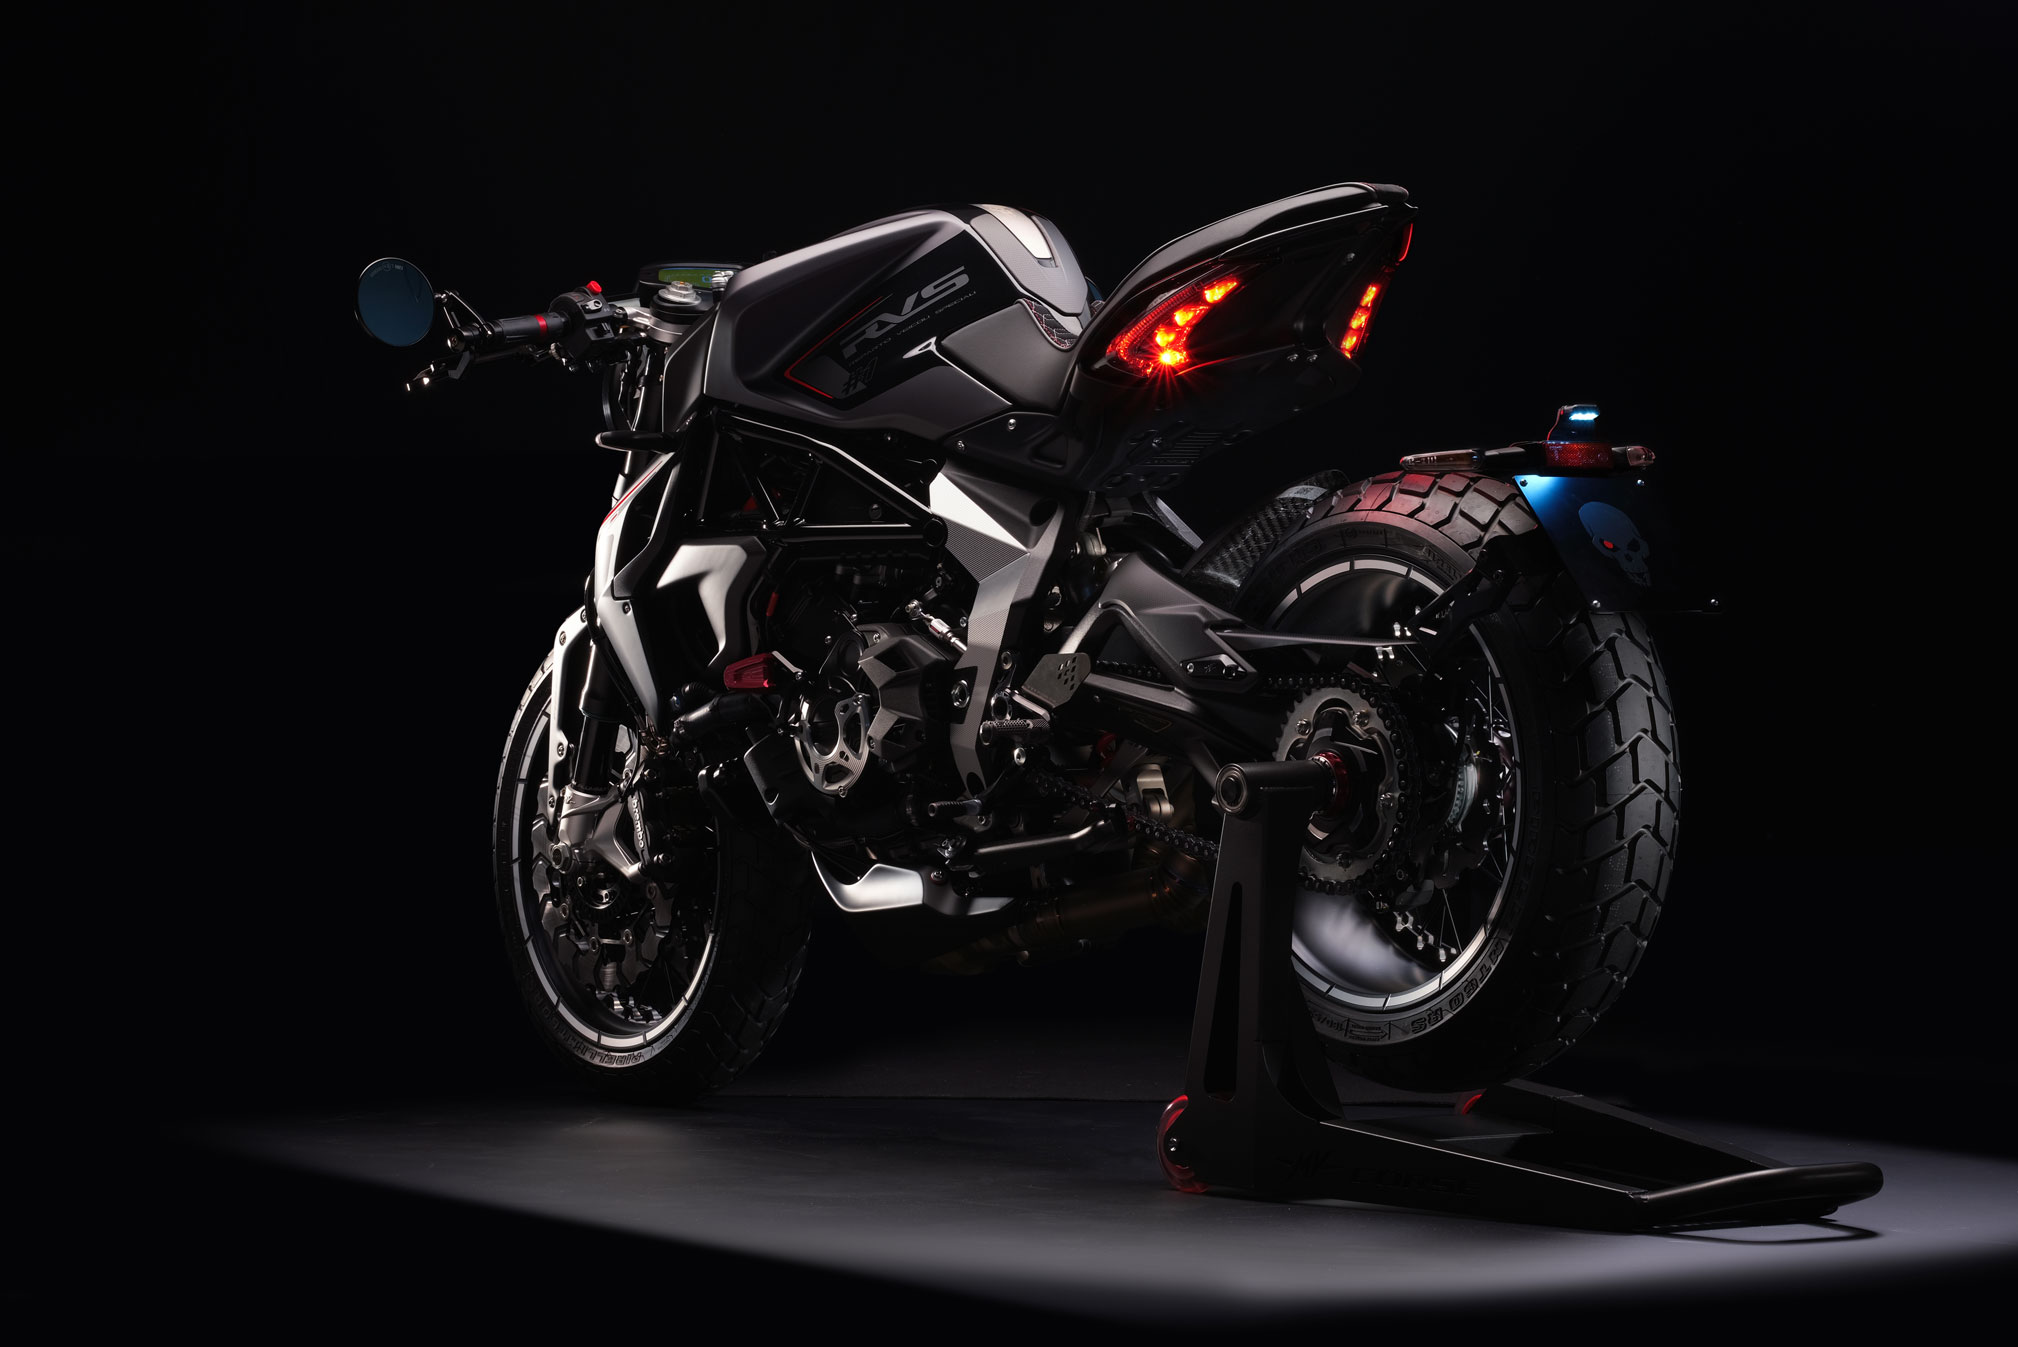 2018 Indian Motorcycle Rumors >> 2018 MV Agusta RVS#1 Review • TotalMotorcycle